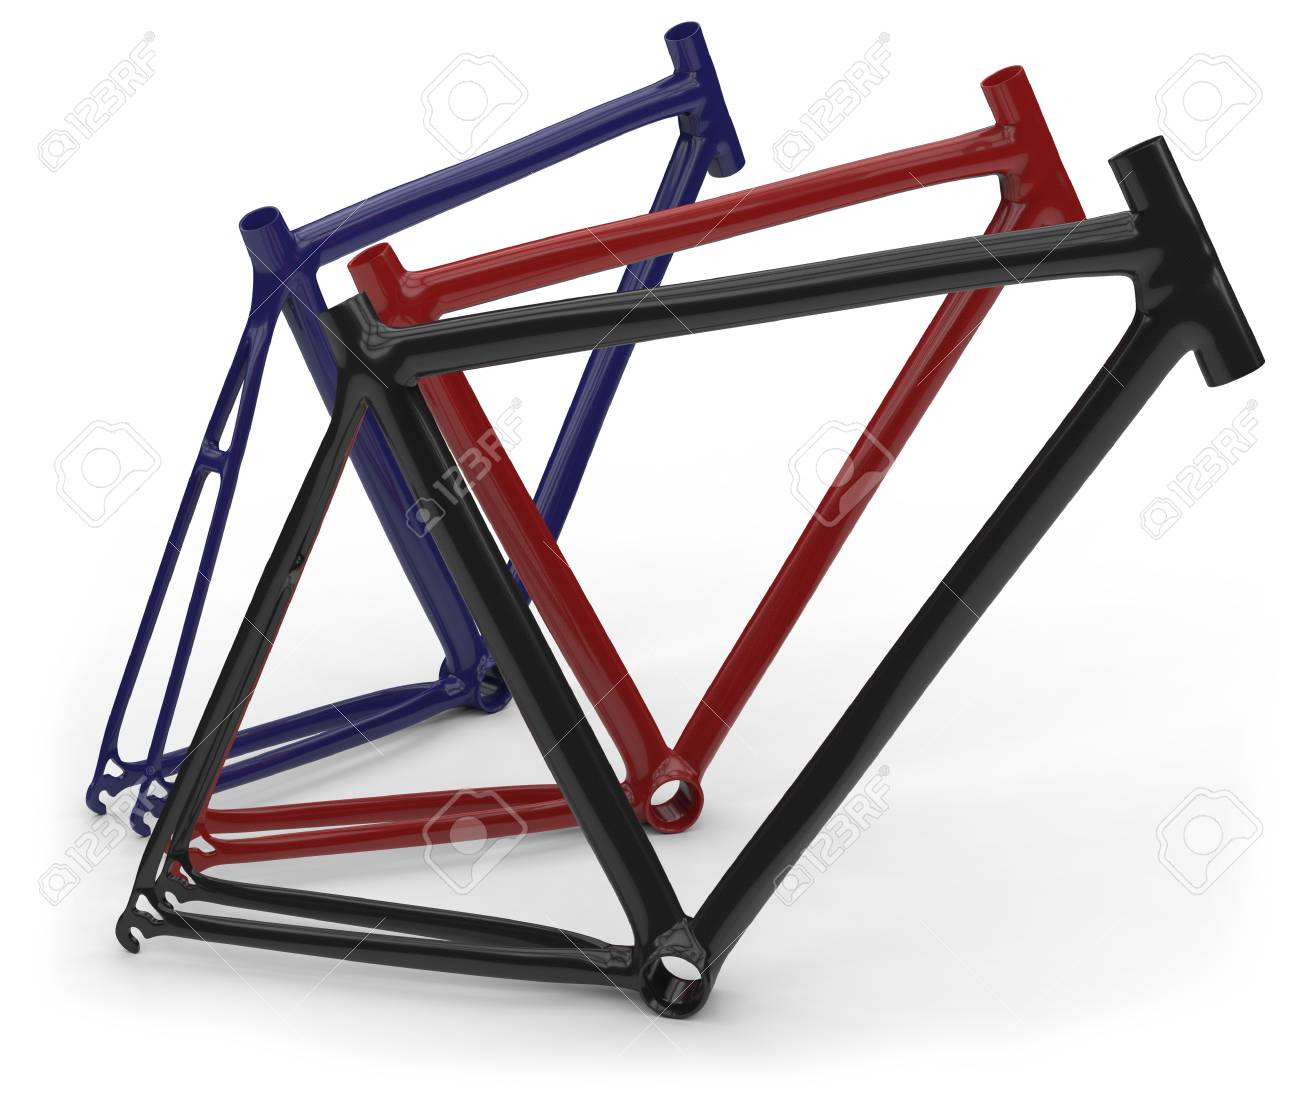 Carbon Fiber Bike Frames Isolated On White Stock Photo, Picture And ...